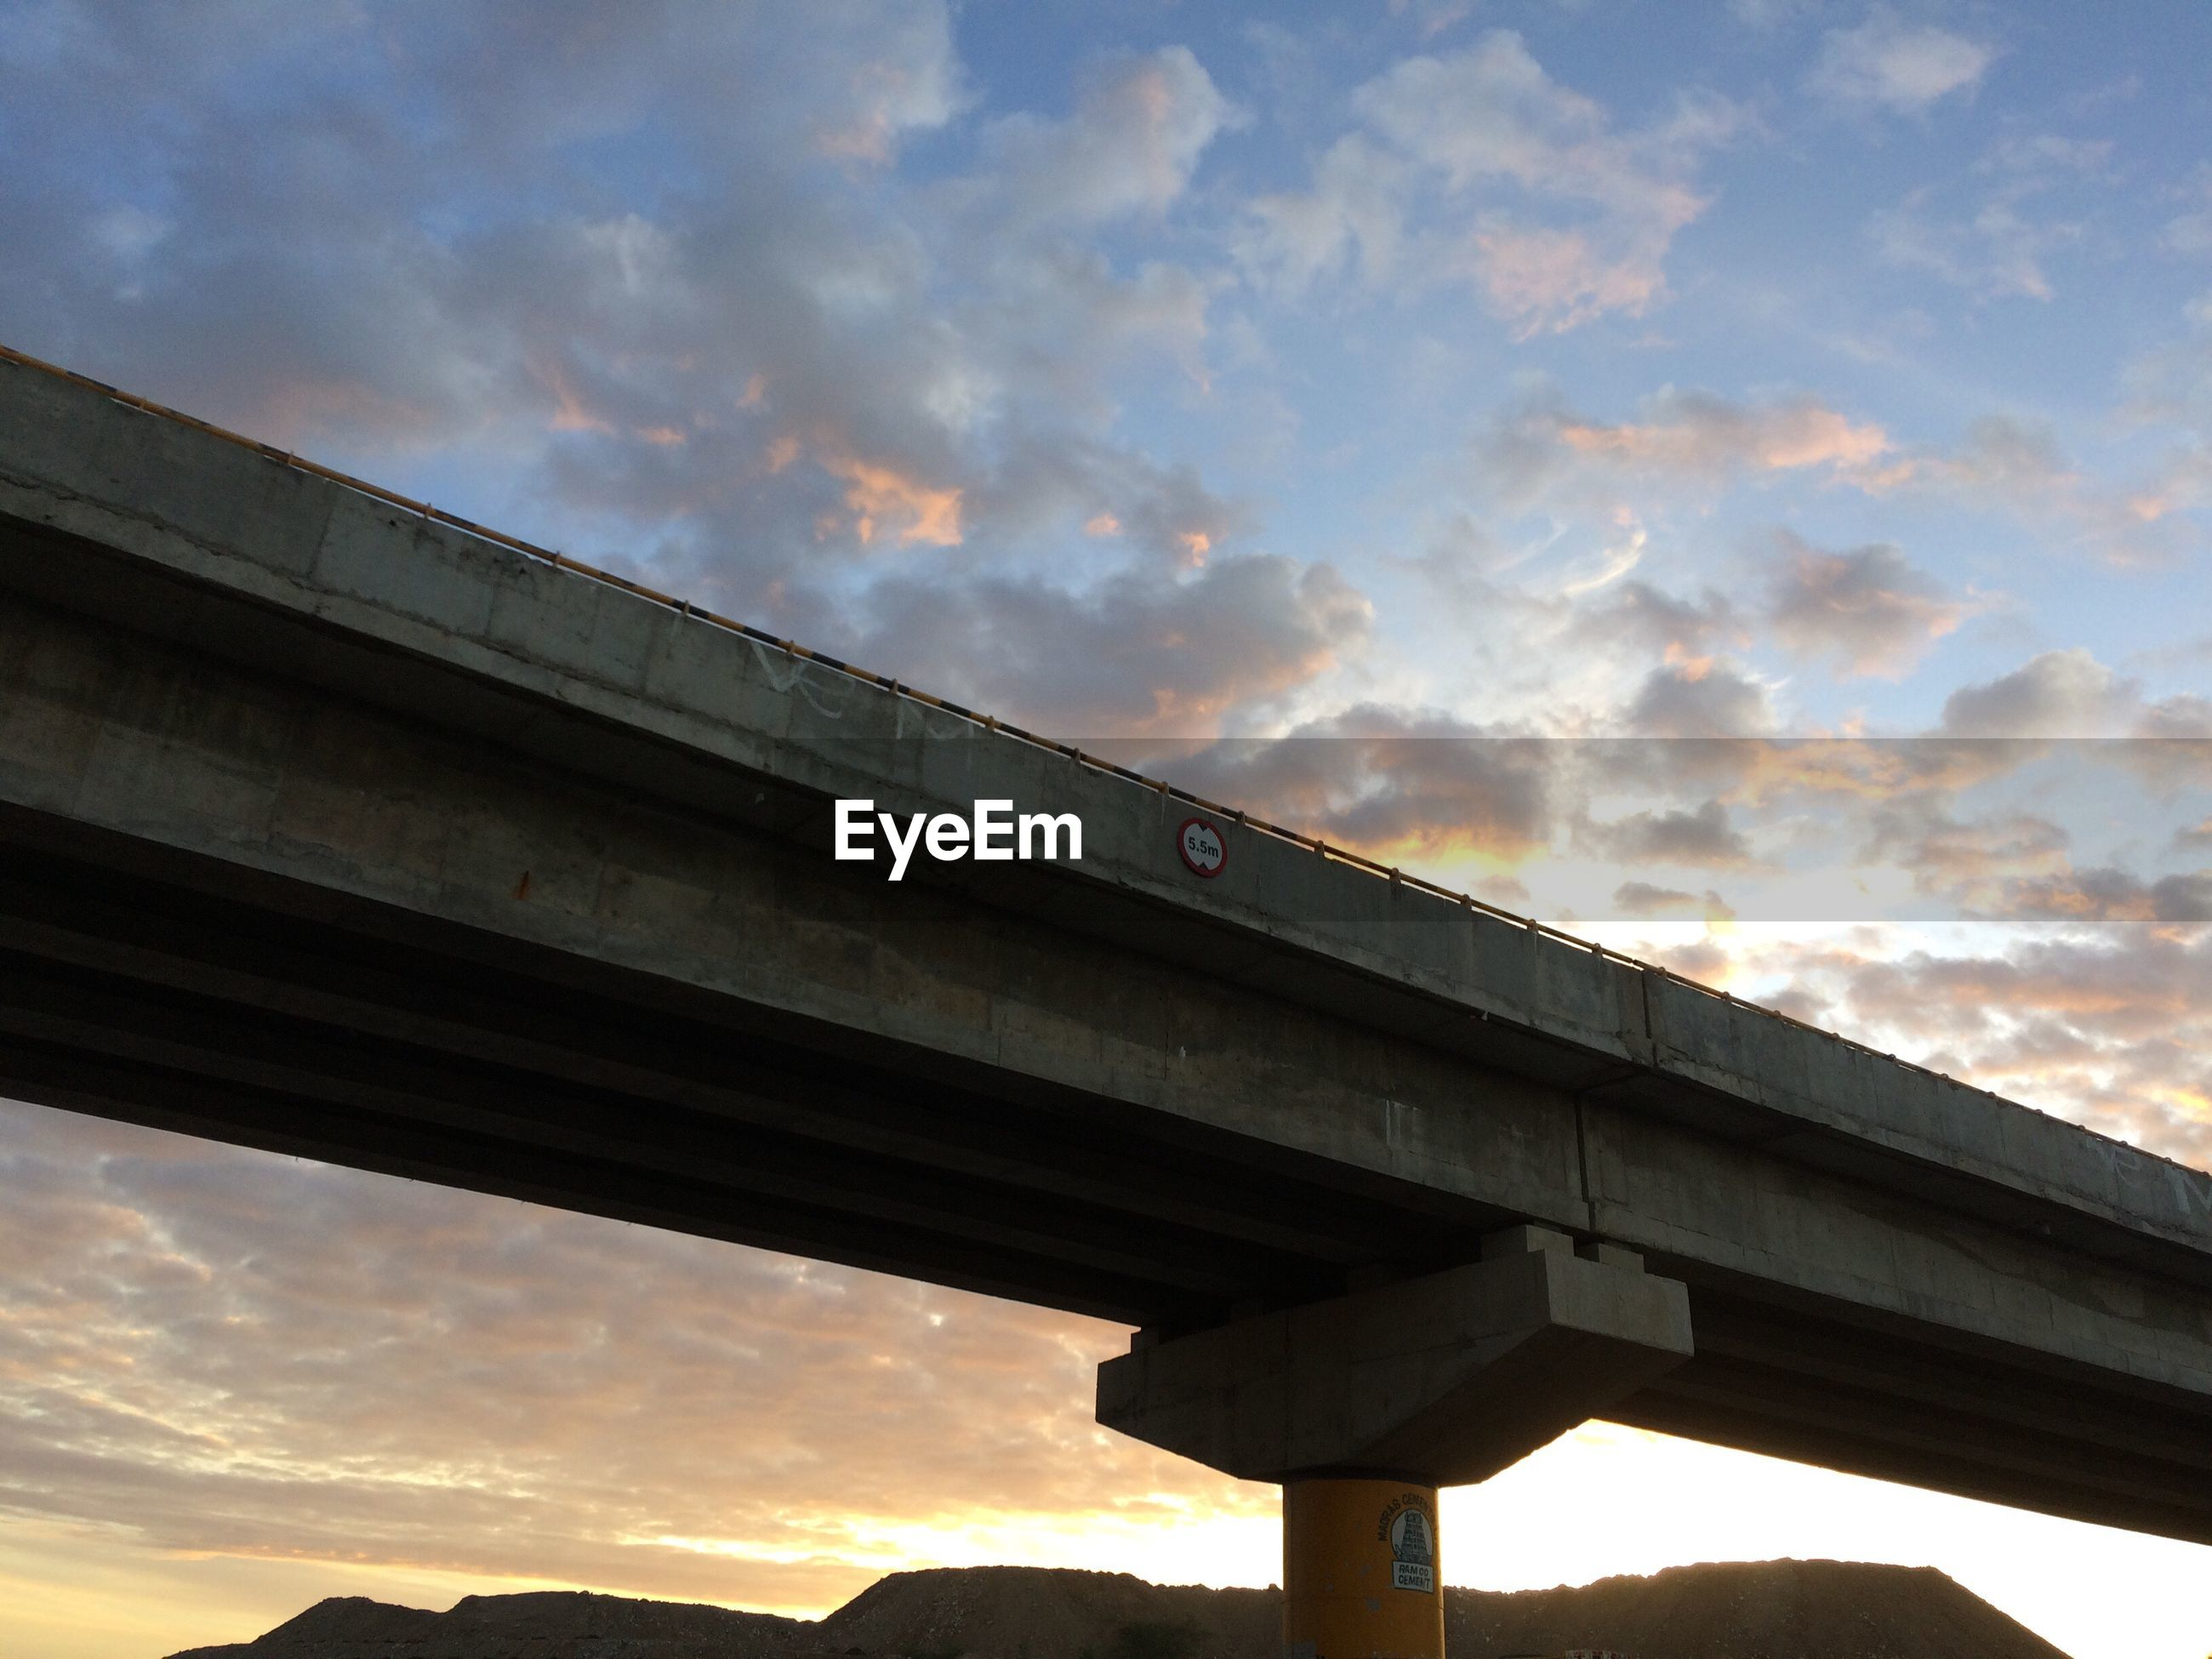 Low angle view of bridge against cloudy sky during sunset